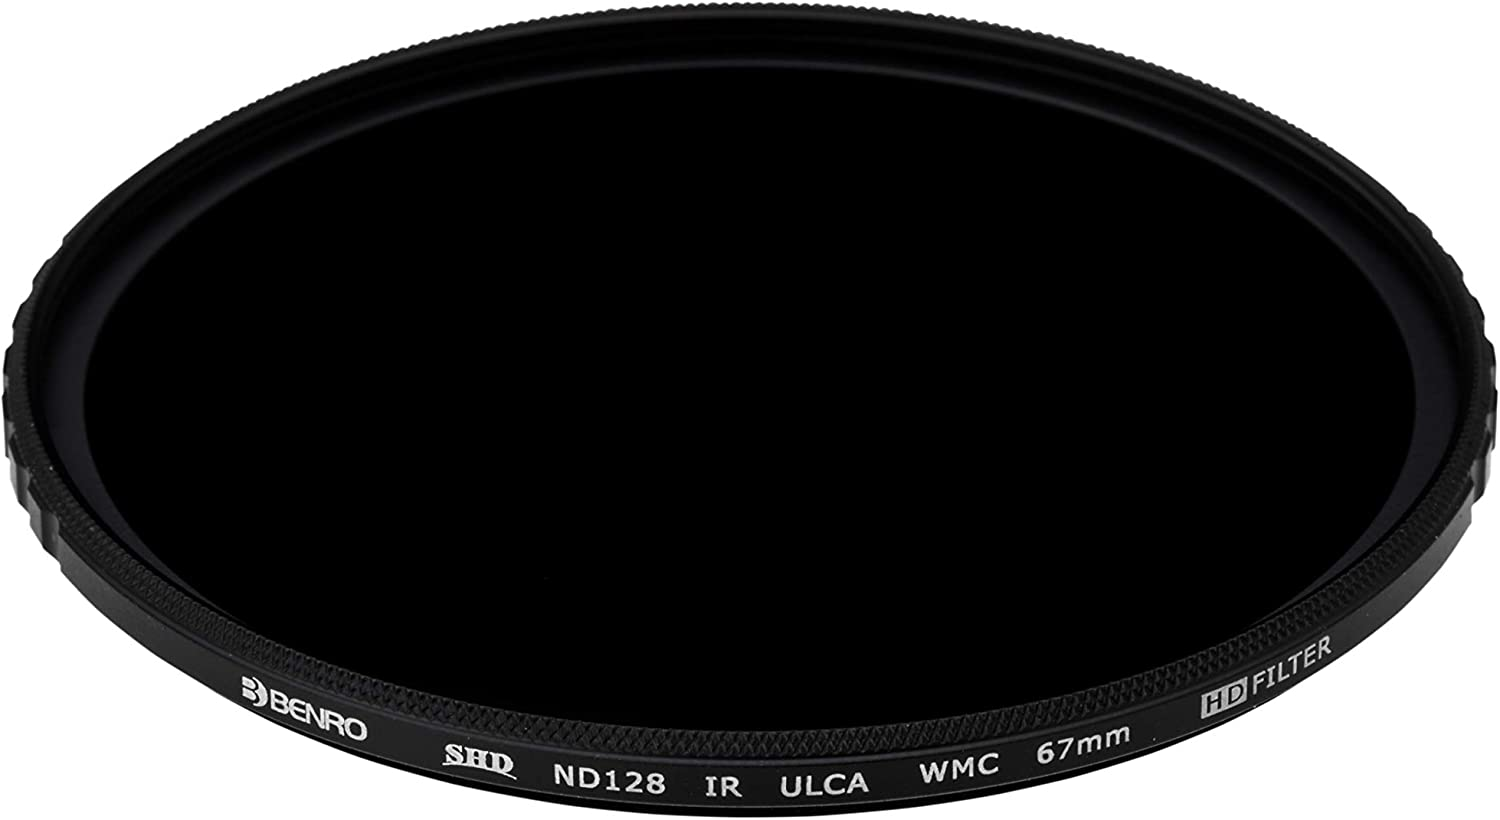 Shdnd25667 8-Stop Benro Master Neutral Density Filter ND256 67mm 2.4ND